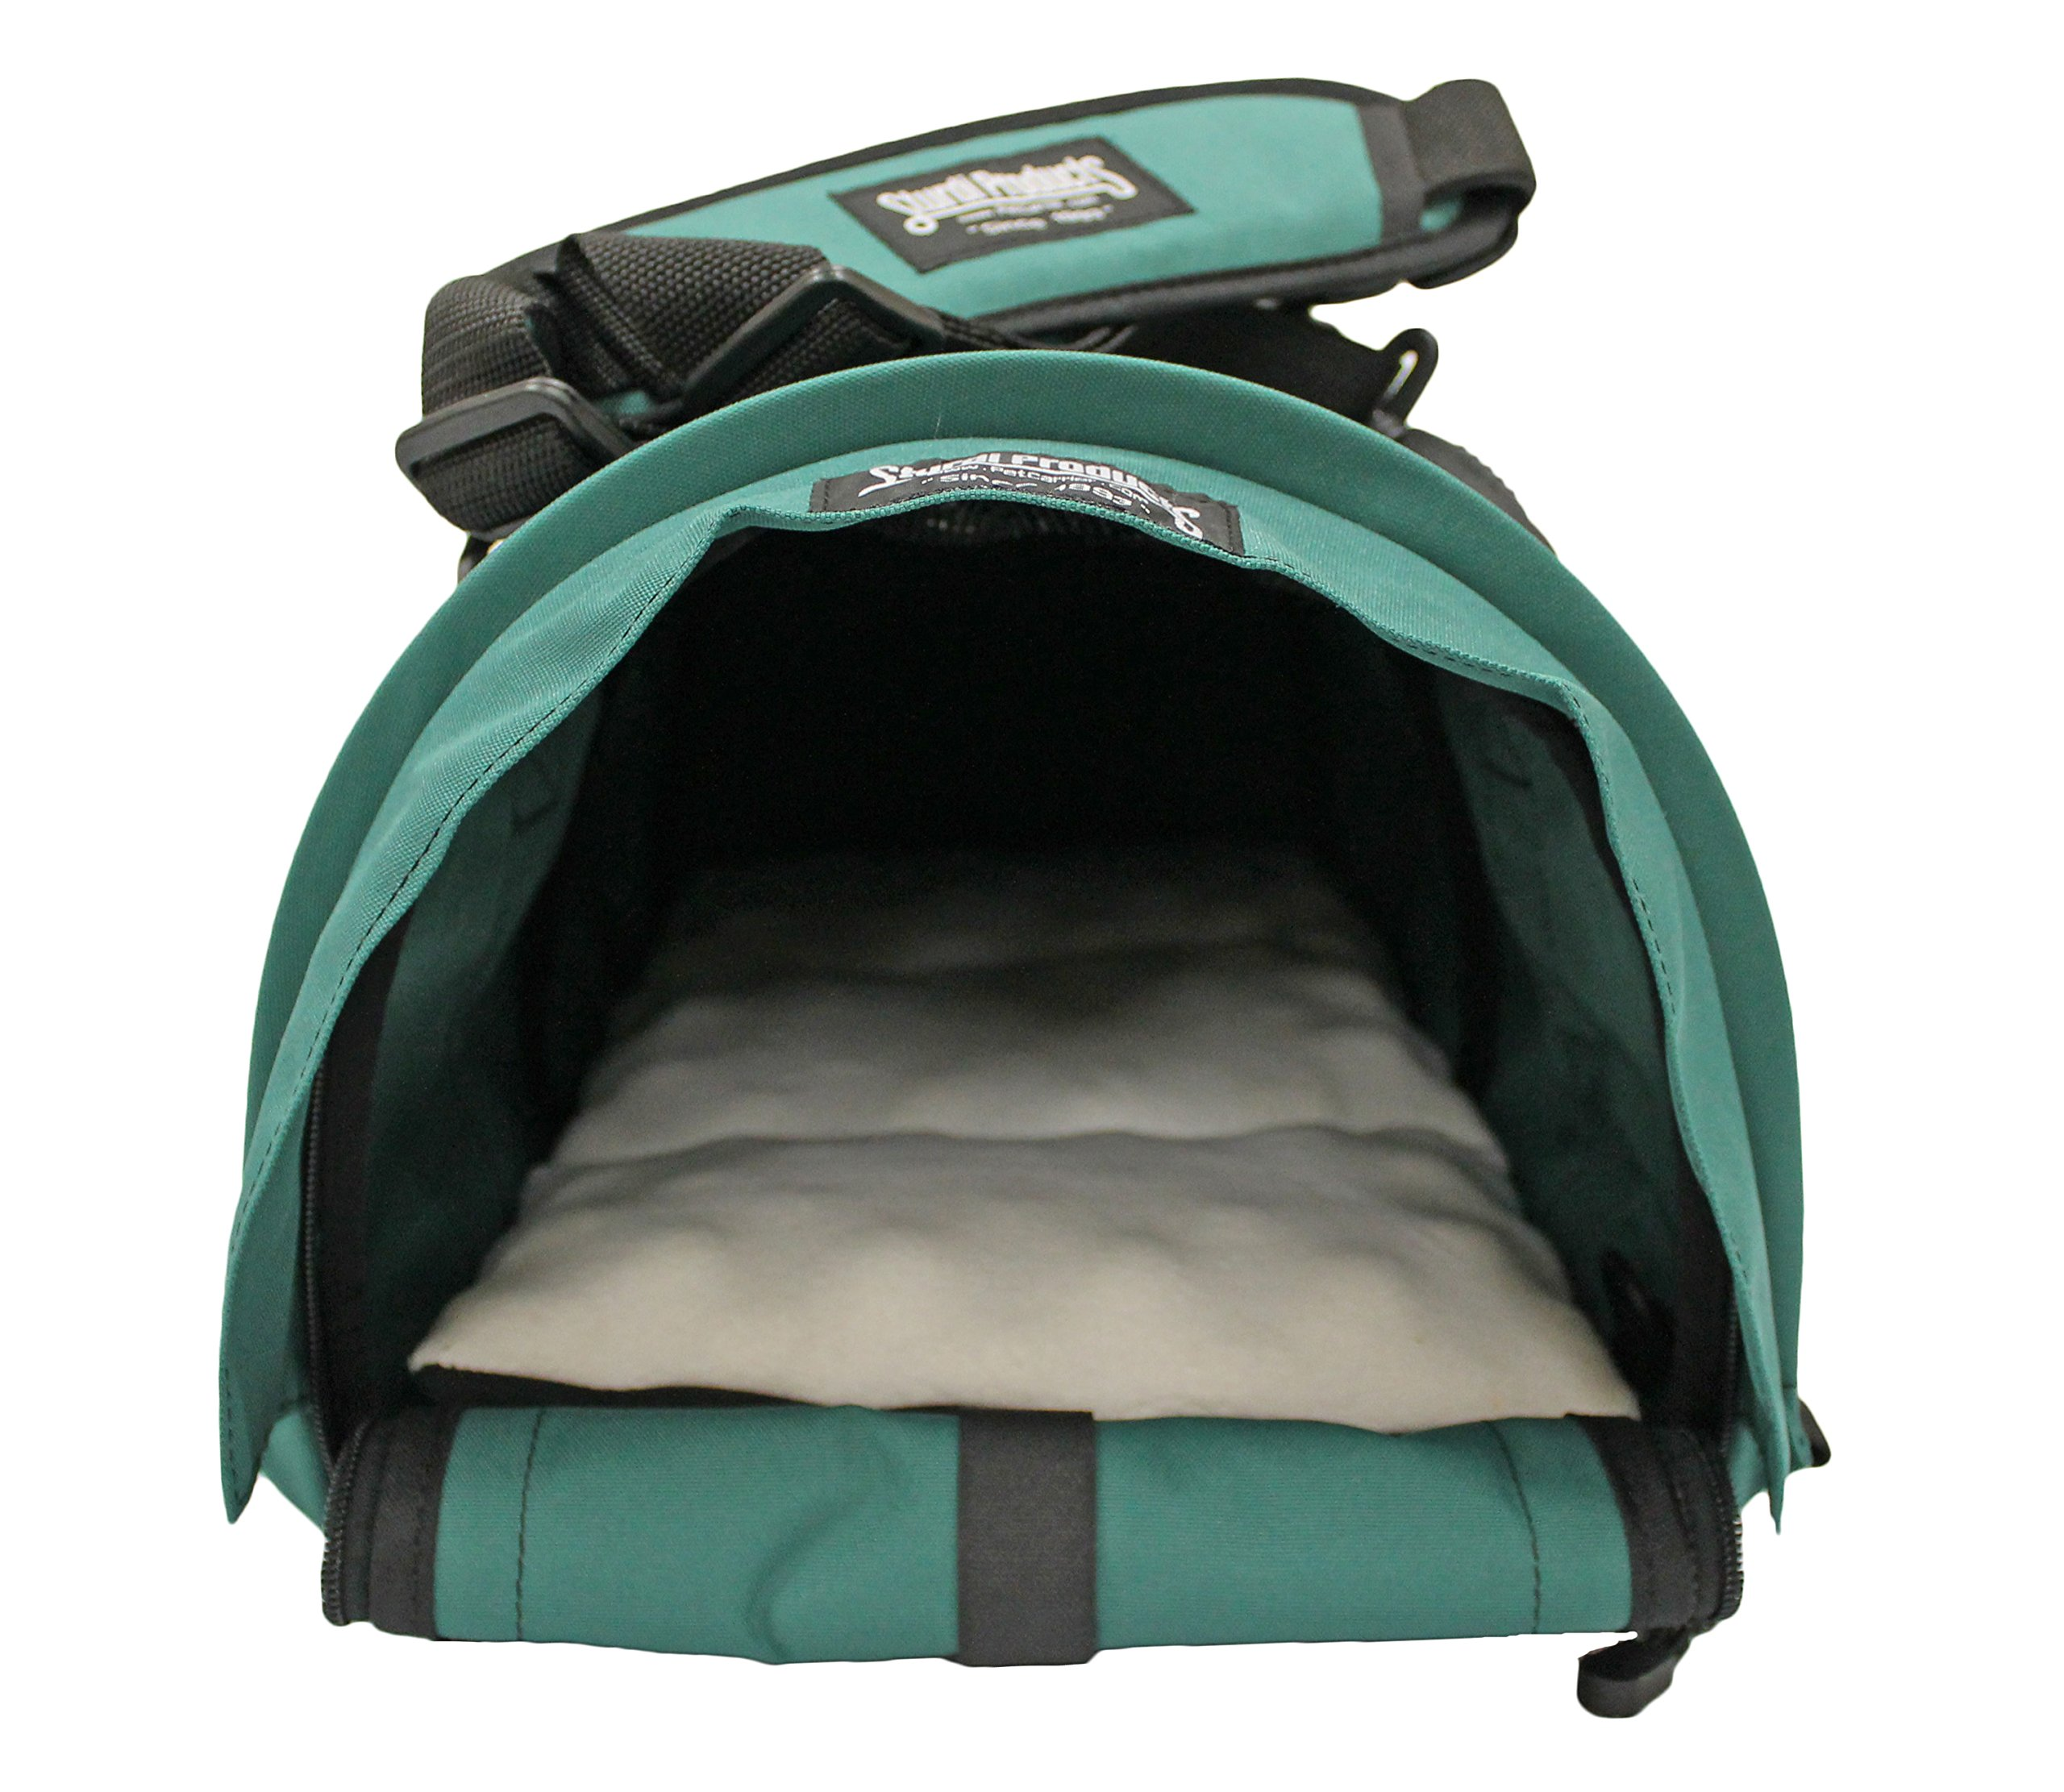 Sturdi Products SturdiBag Pet Carrier, Small, Evergreen by STURDI PRODUCTS